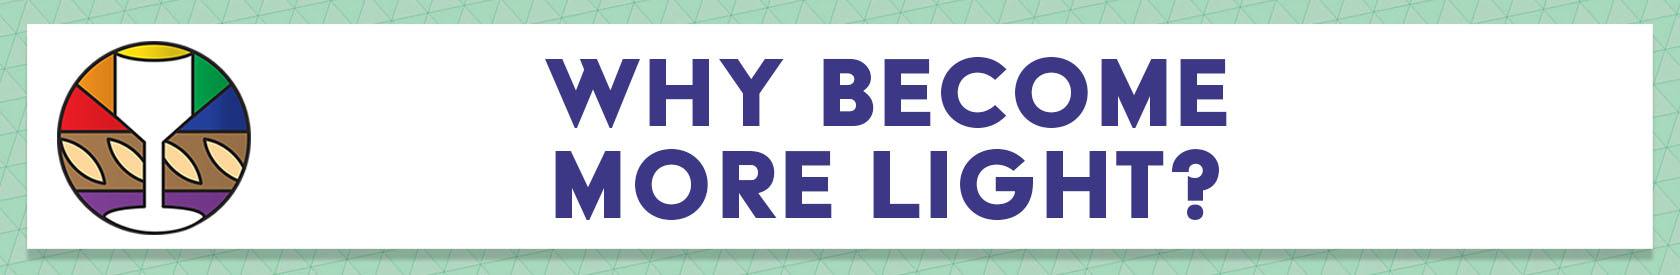 Why Become More Light?